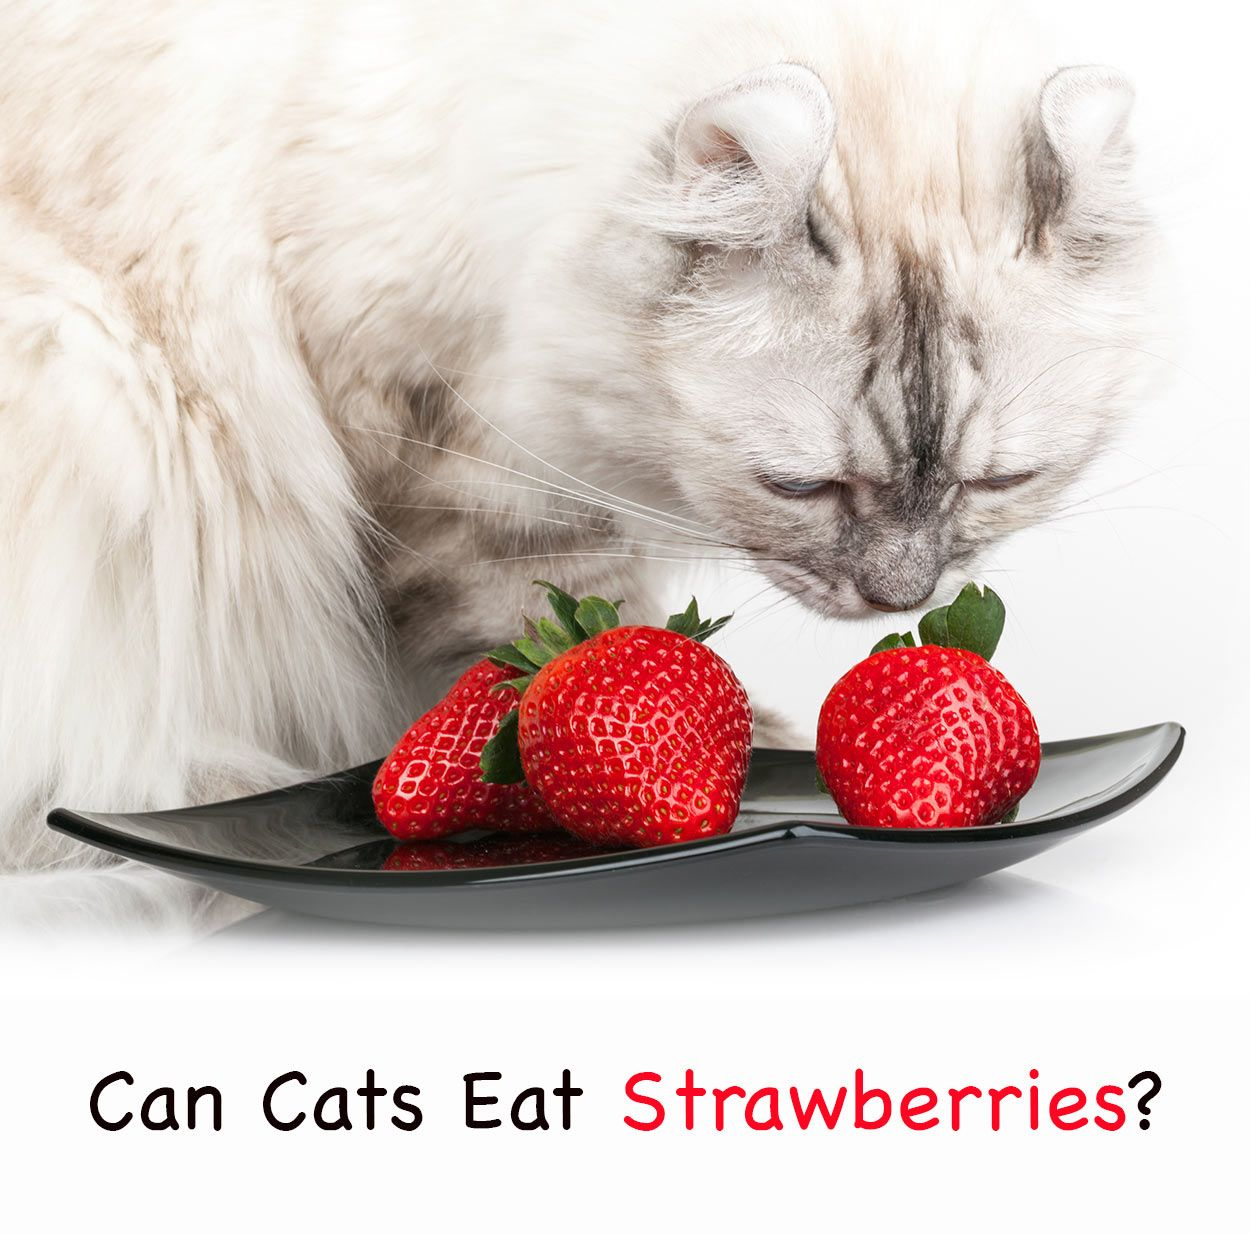 Can Cats Eat Strawberries Or Are Strawberries Bad For Cats